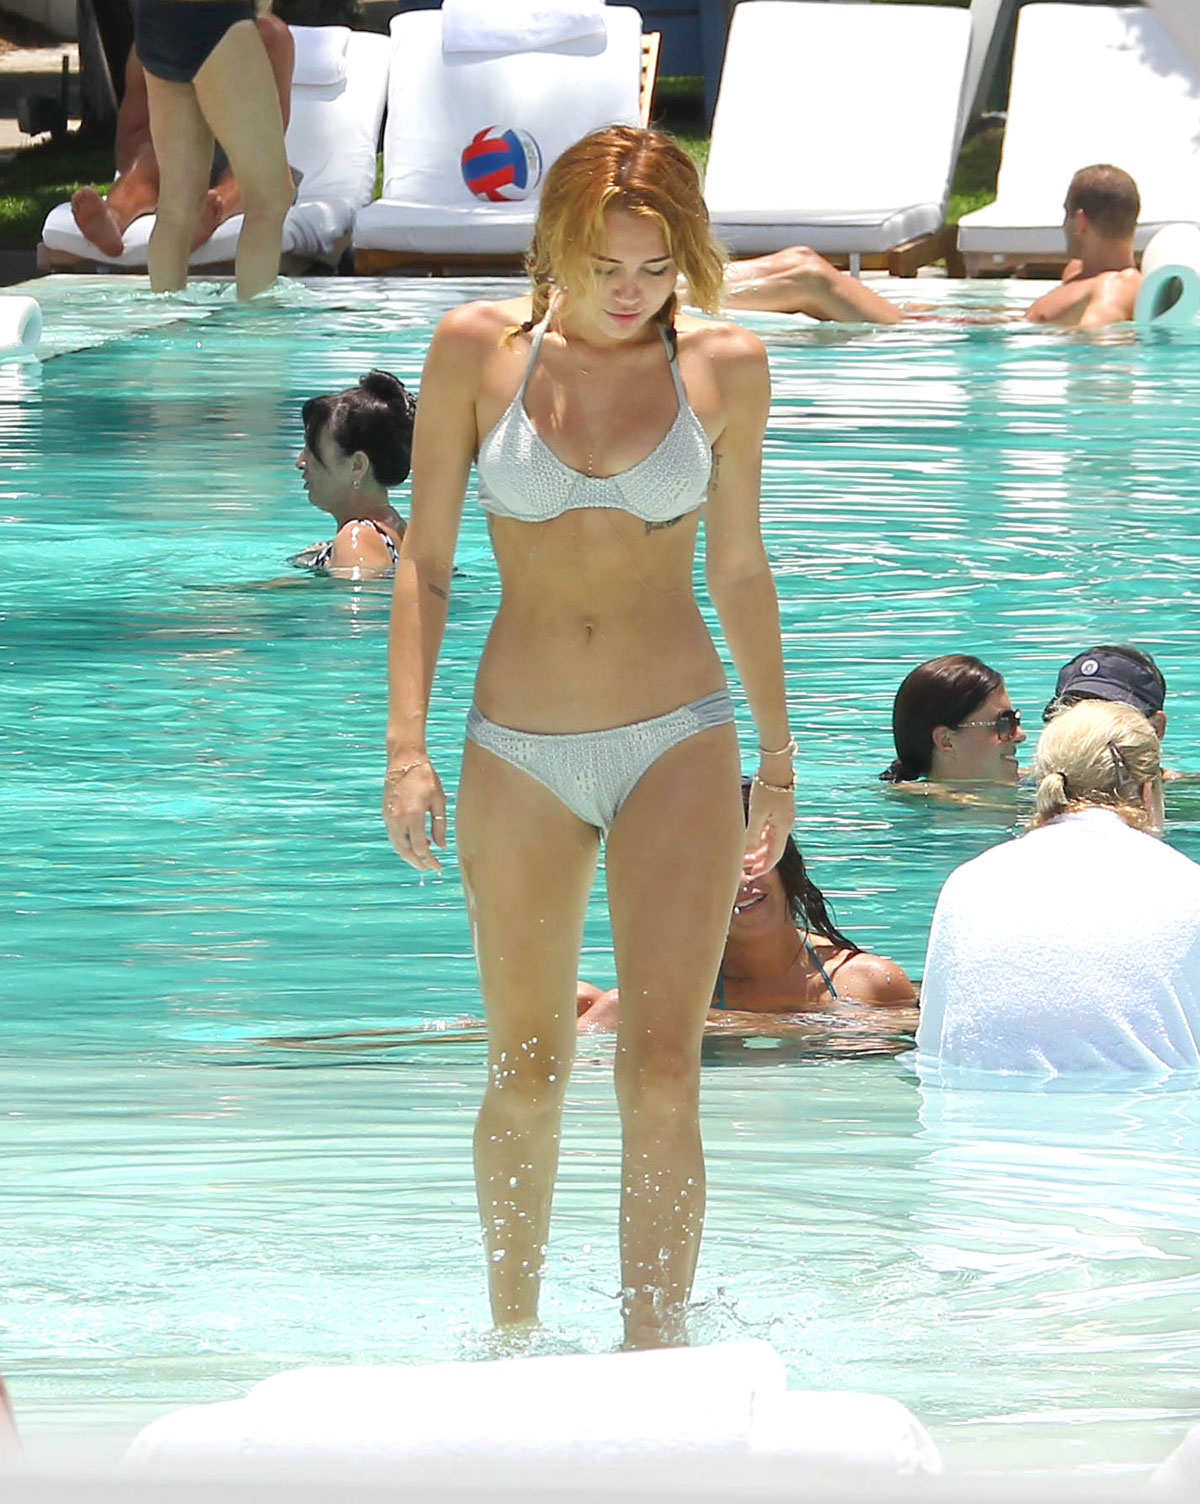 MILEY CYRUS in Bikini at a Hotel Pool in Miami 6 ... uploading porn to some of those digital picture frames at a Target store ...